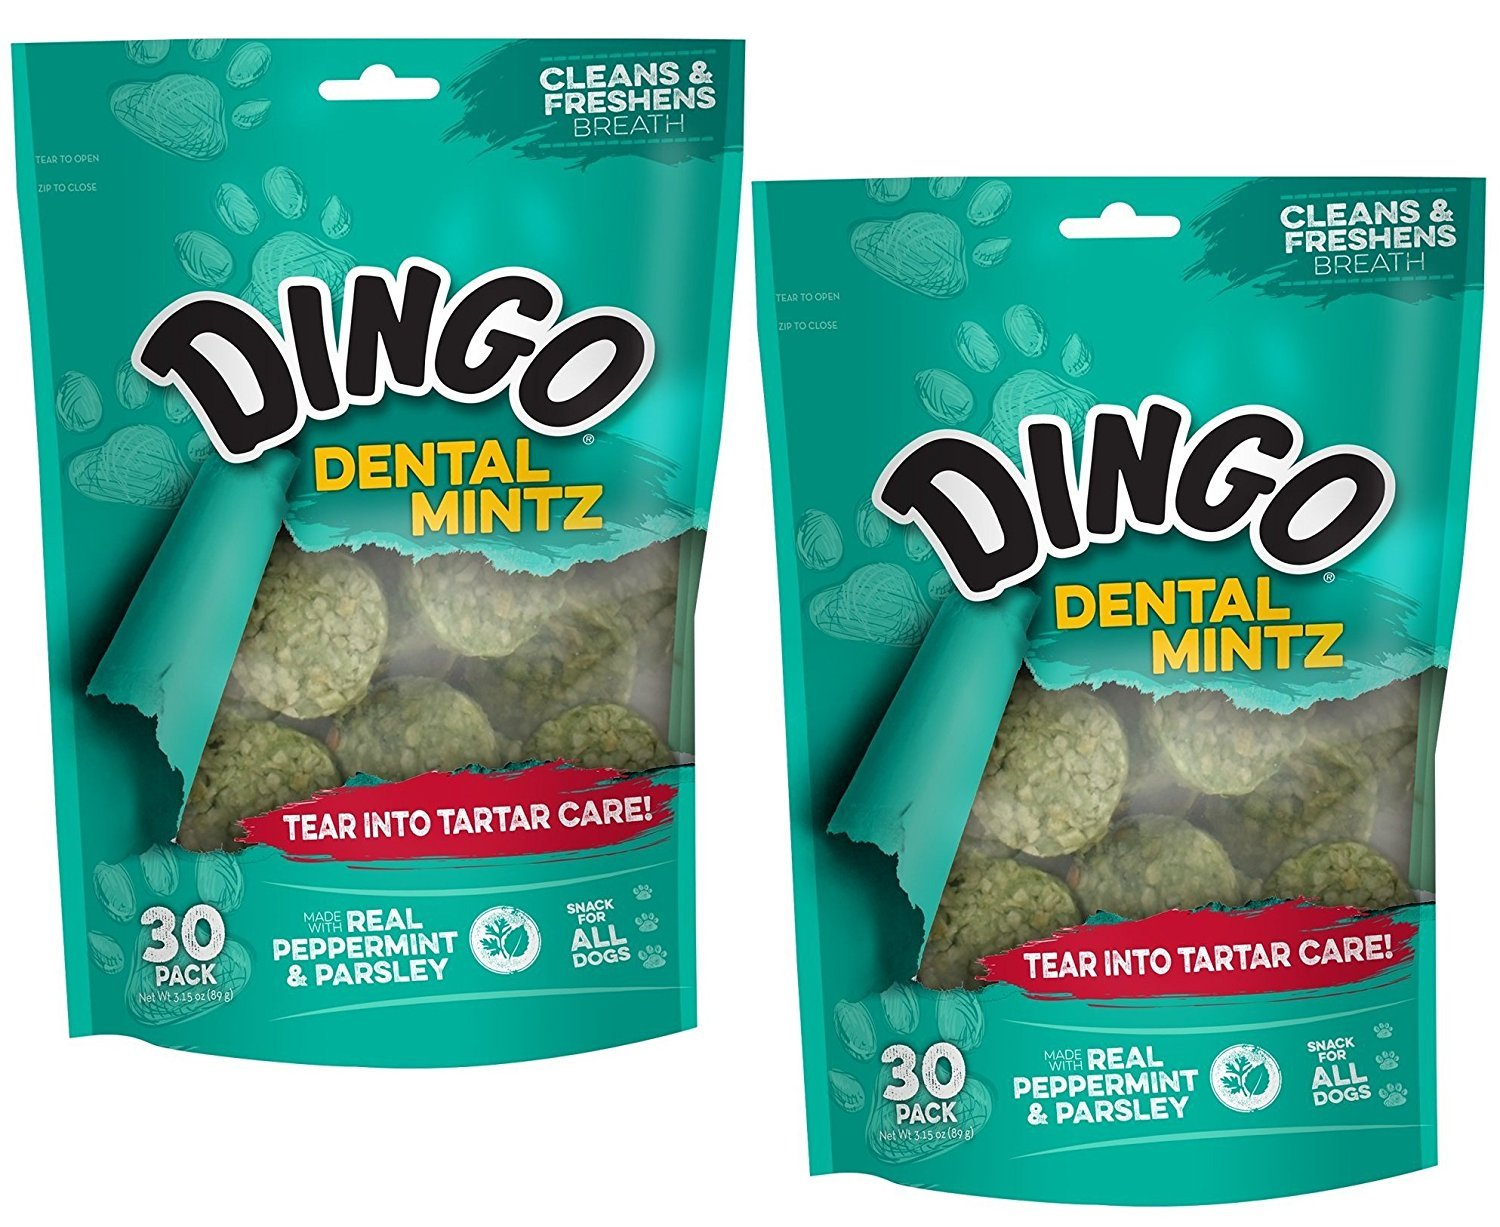 60Count Dingo Tartar and Breath Dental Mintz for All Dogs, 120Count